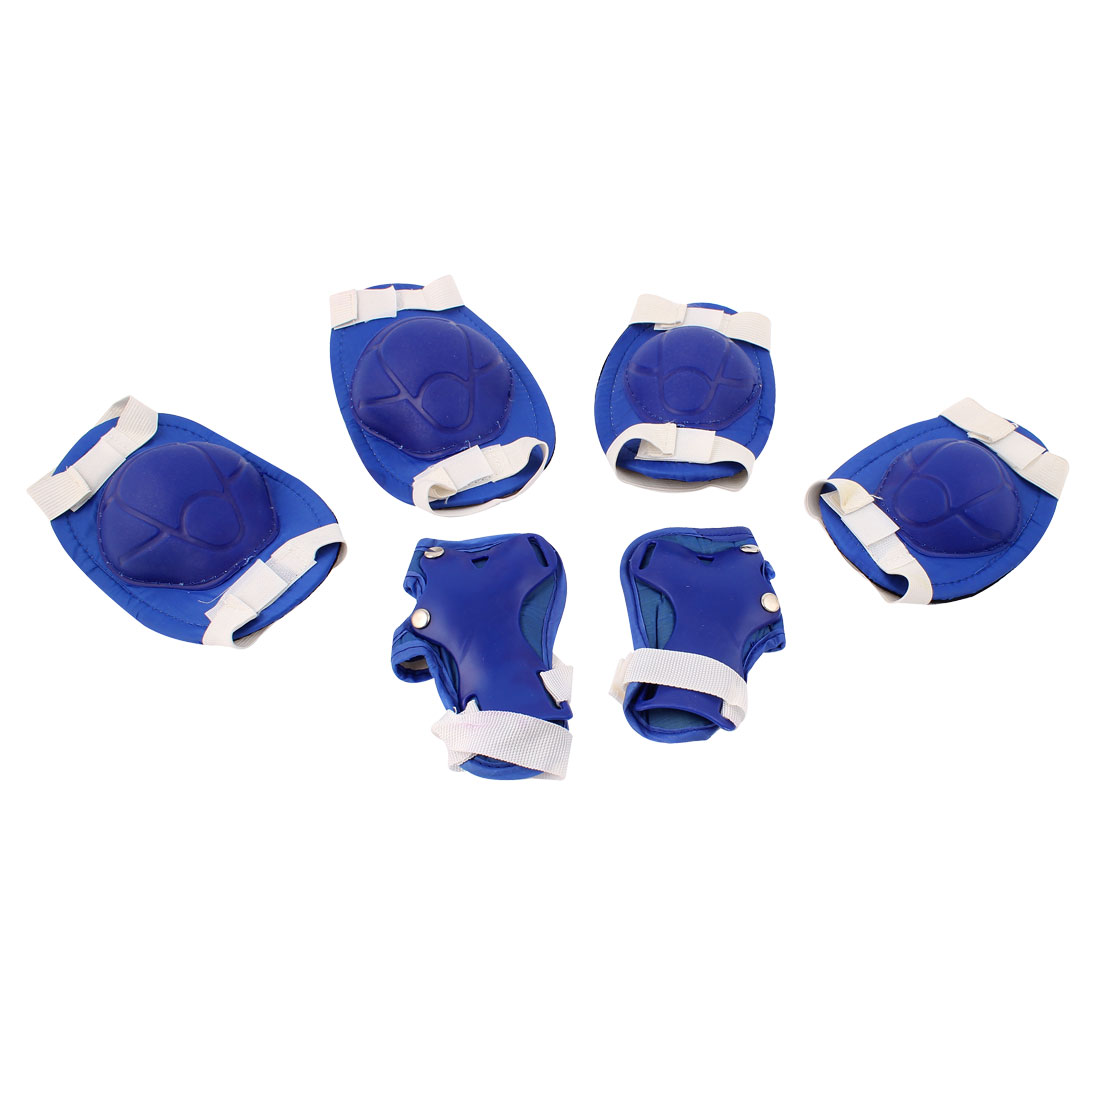 Unique Bargains 6 in 1 Skiing Skating Palm Elbow Knee Support Protector Blue by